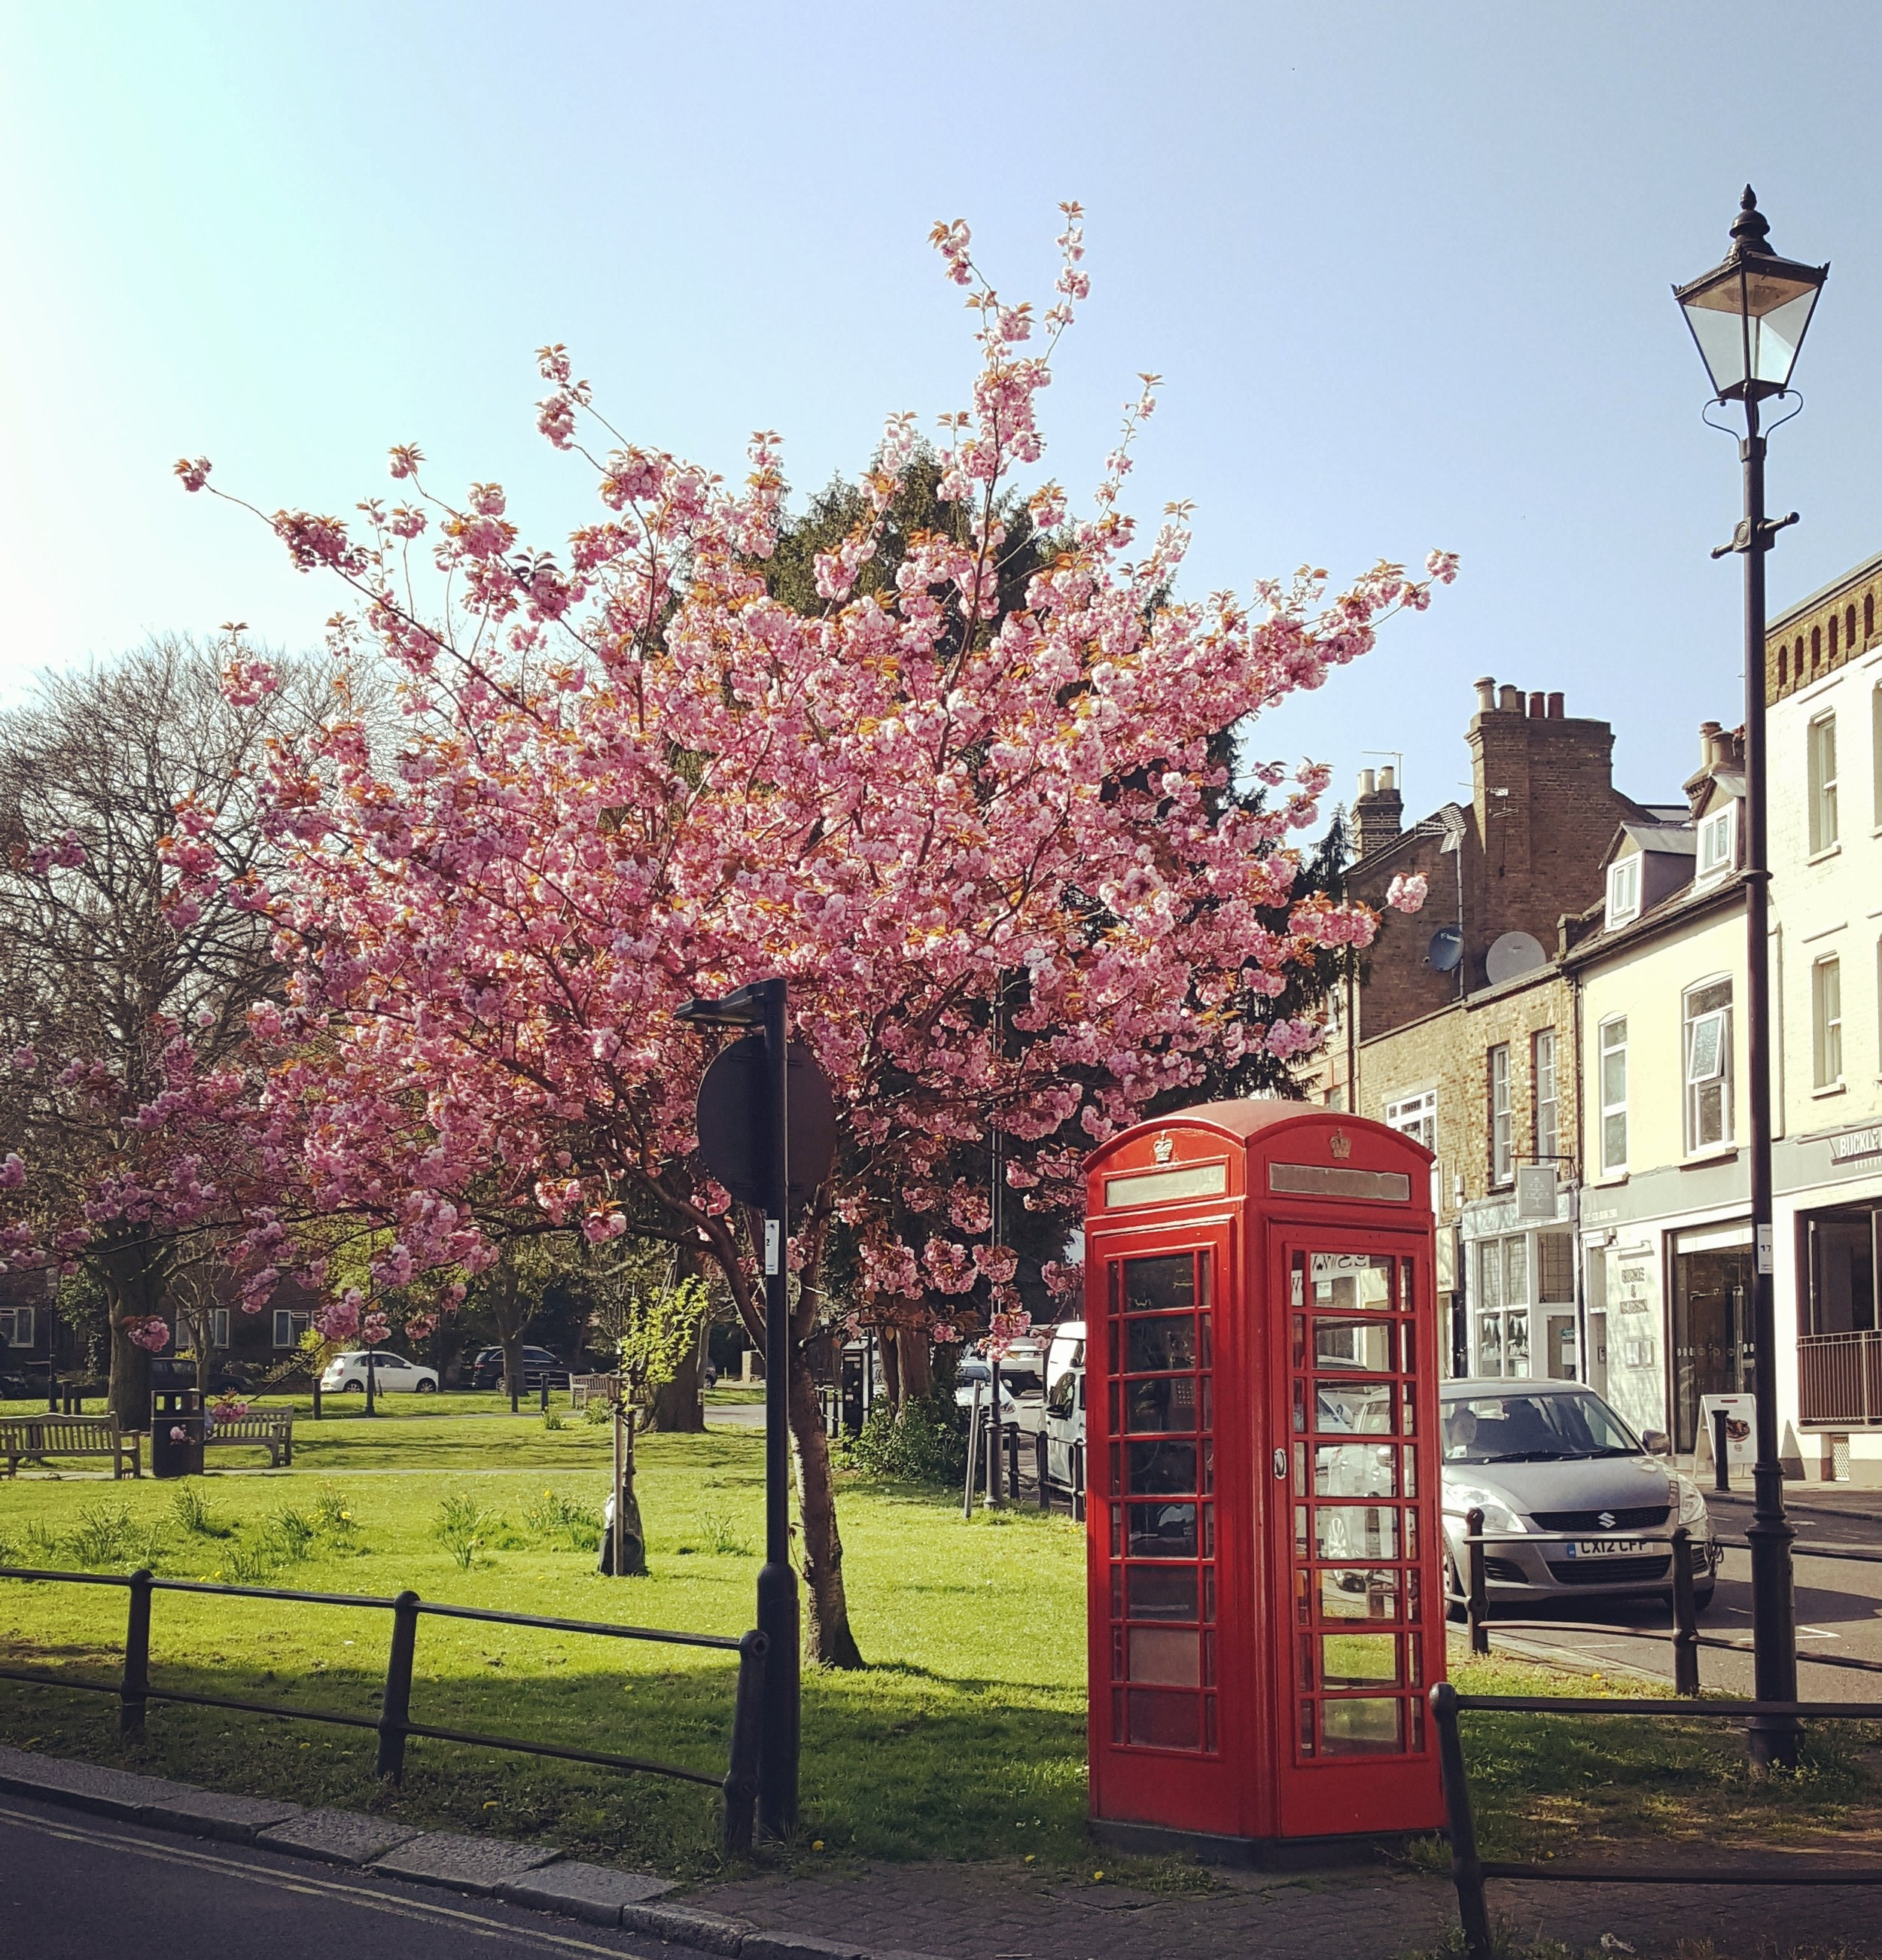 Cherry blossom on the Green (and a phone box that smells like the inside of a tramps's underpants).